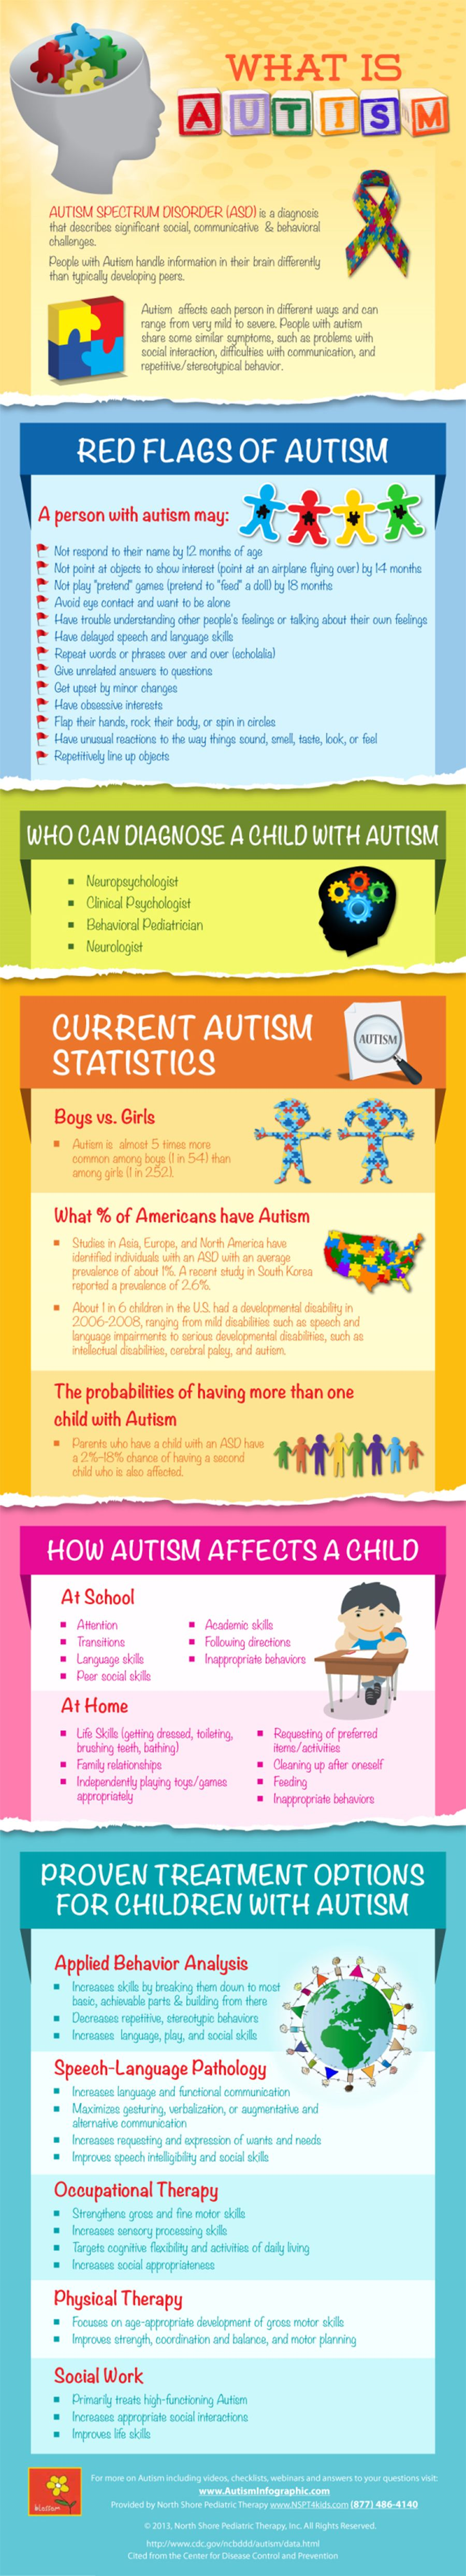 What is Autism Note Experienced SLPs can diagnose autism